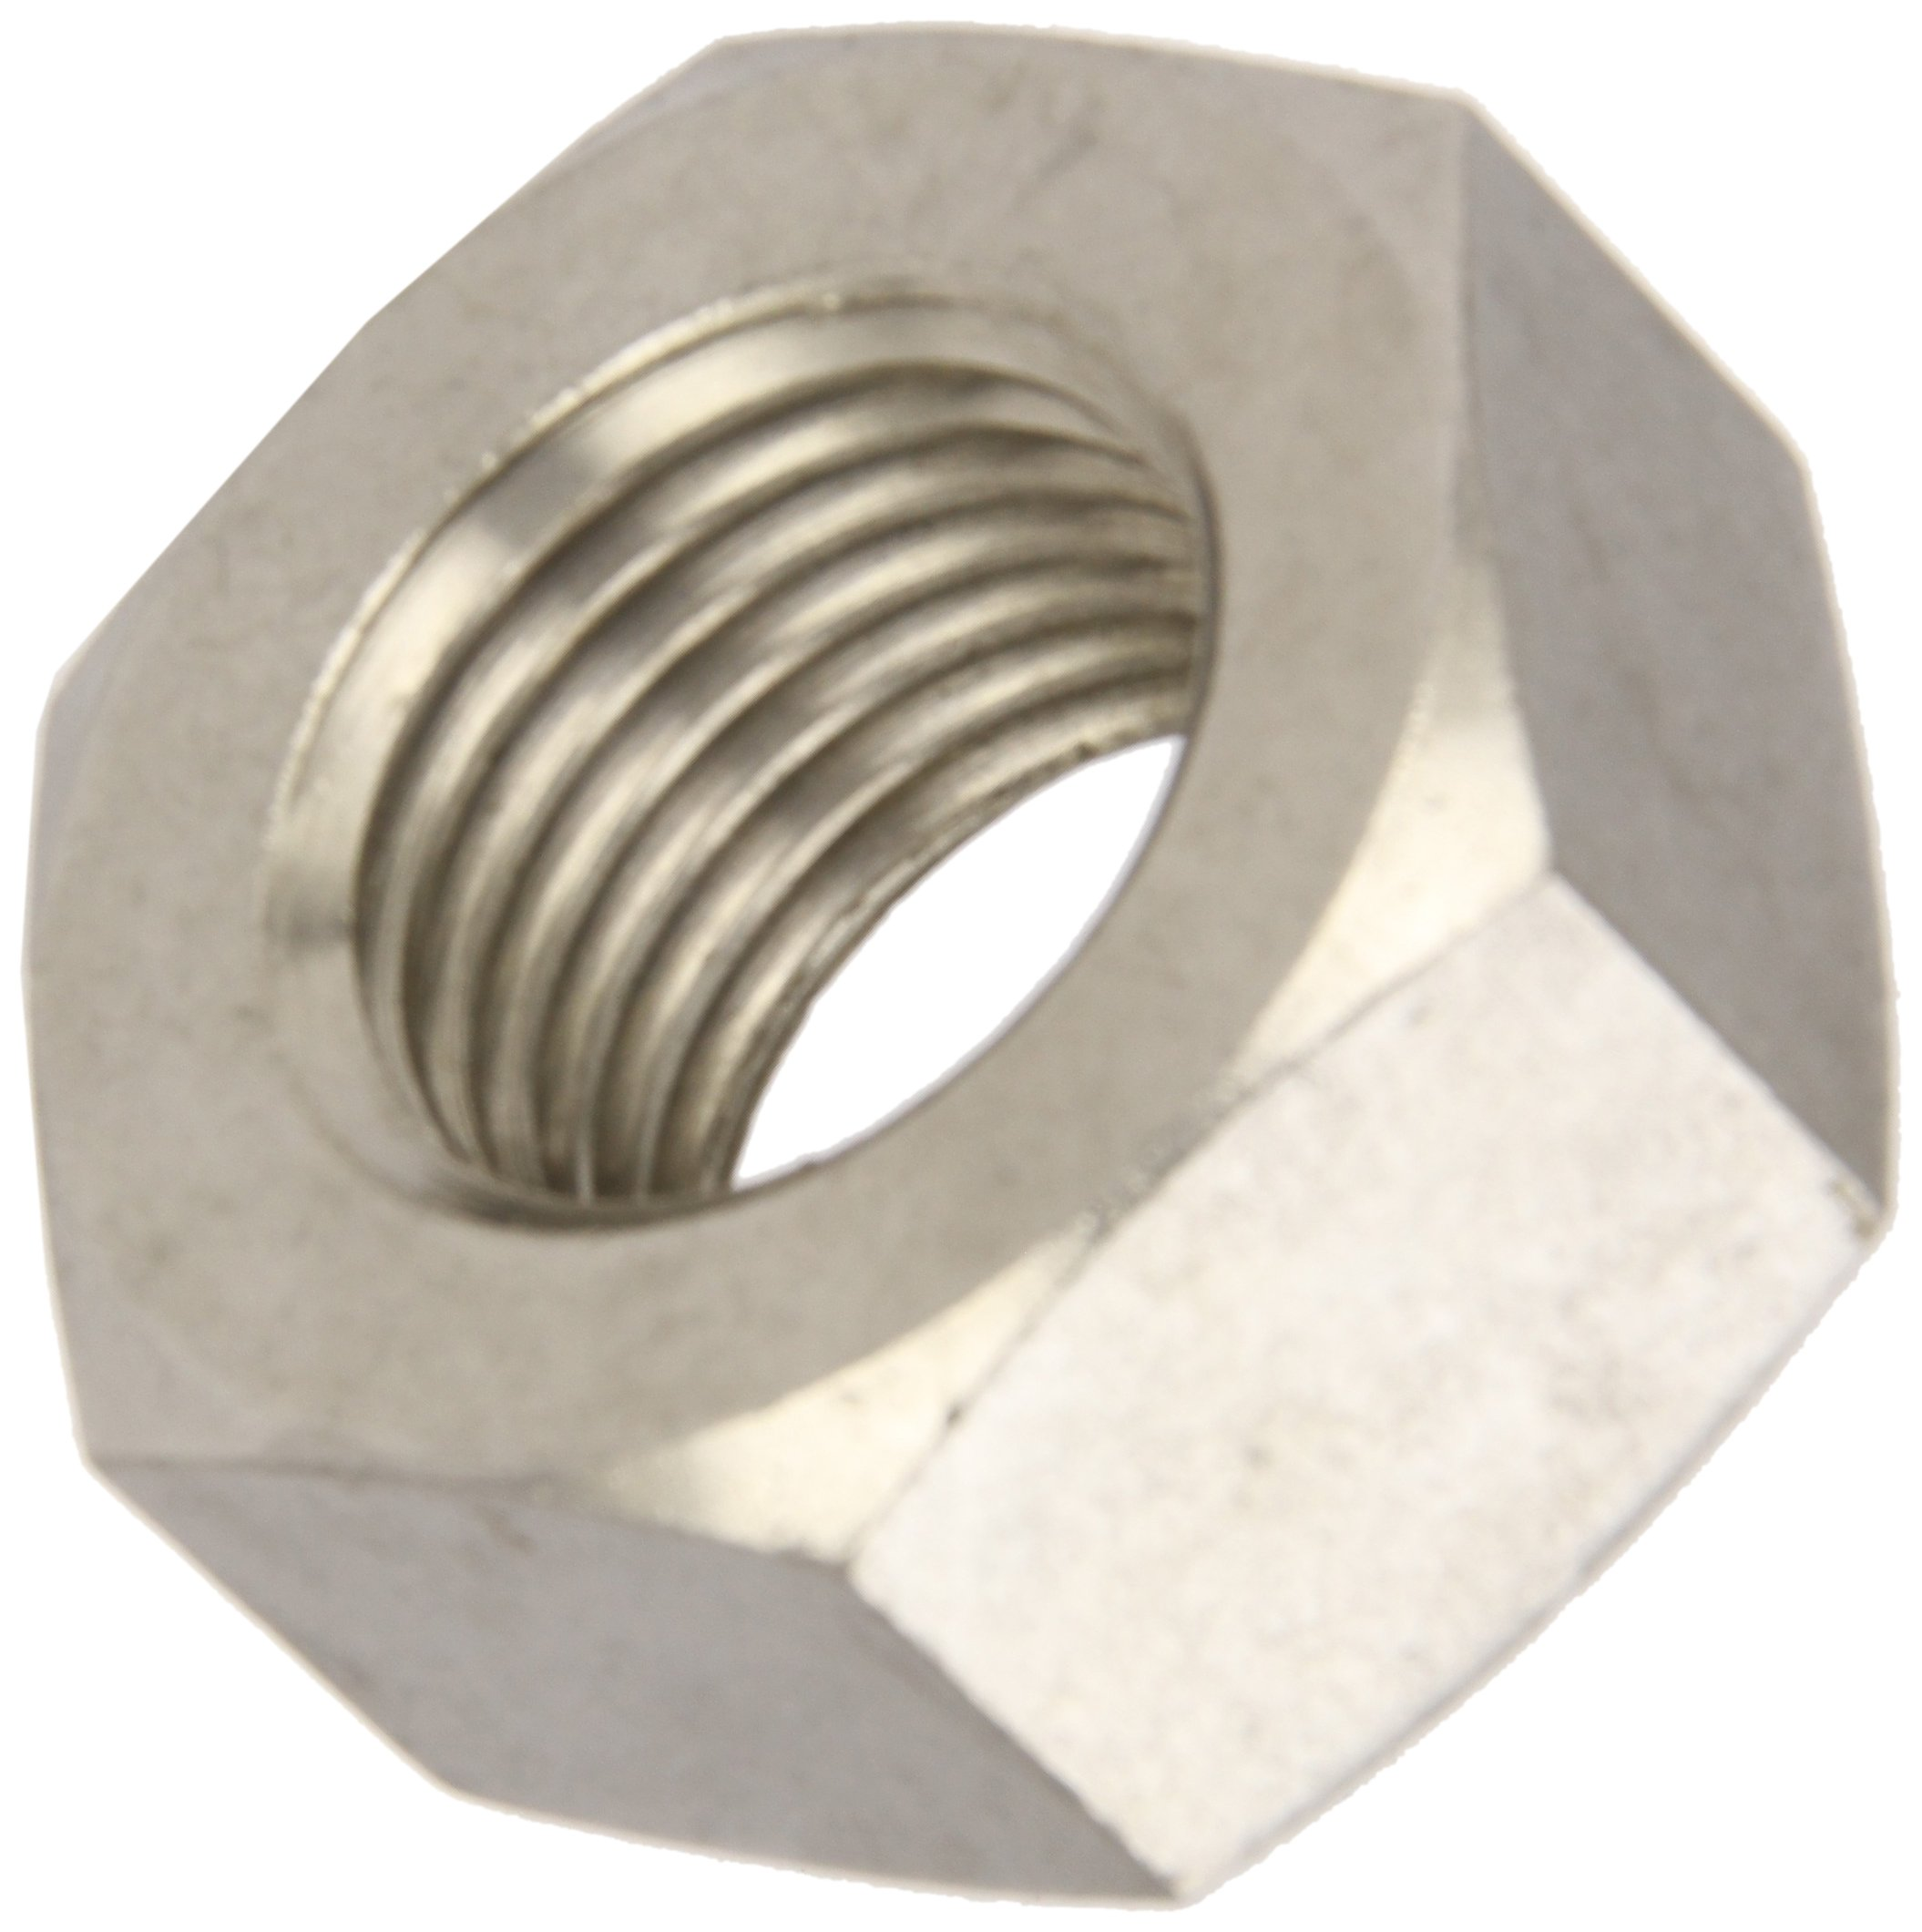 M4-0.7 Thread Size Metric Black Oxide Finish 3.2 mm Thick Pack of 100 7 mm Width Across Flats DIN 934 18-8 Stainless Steel Hex Nut